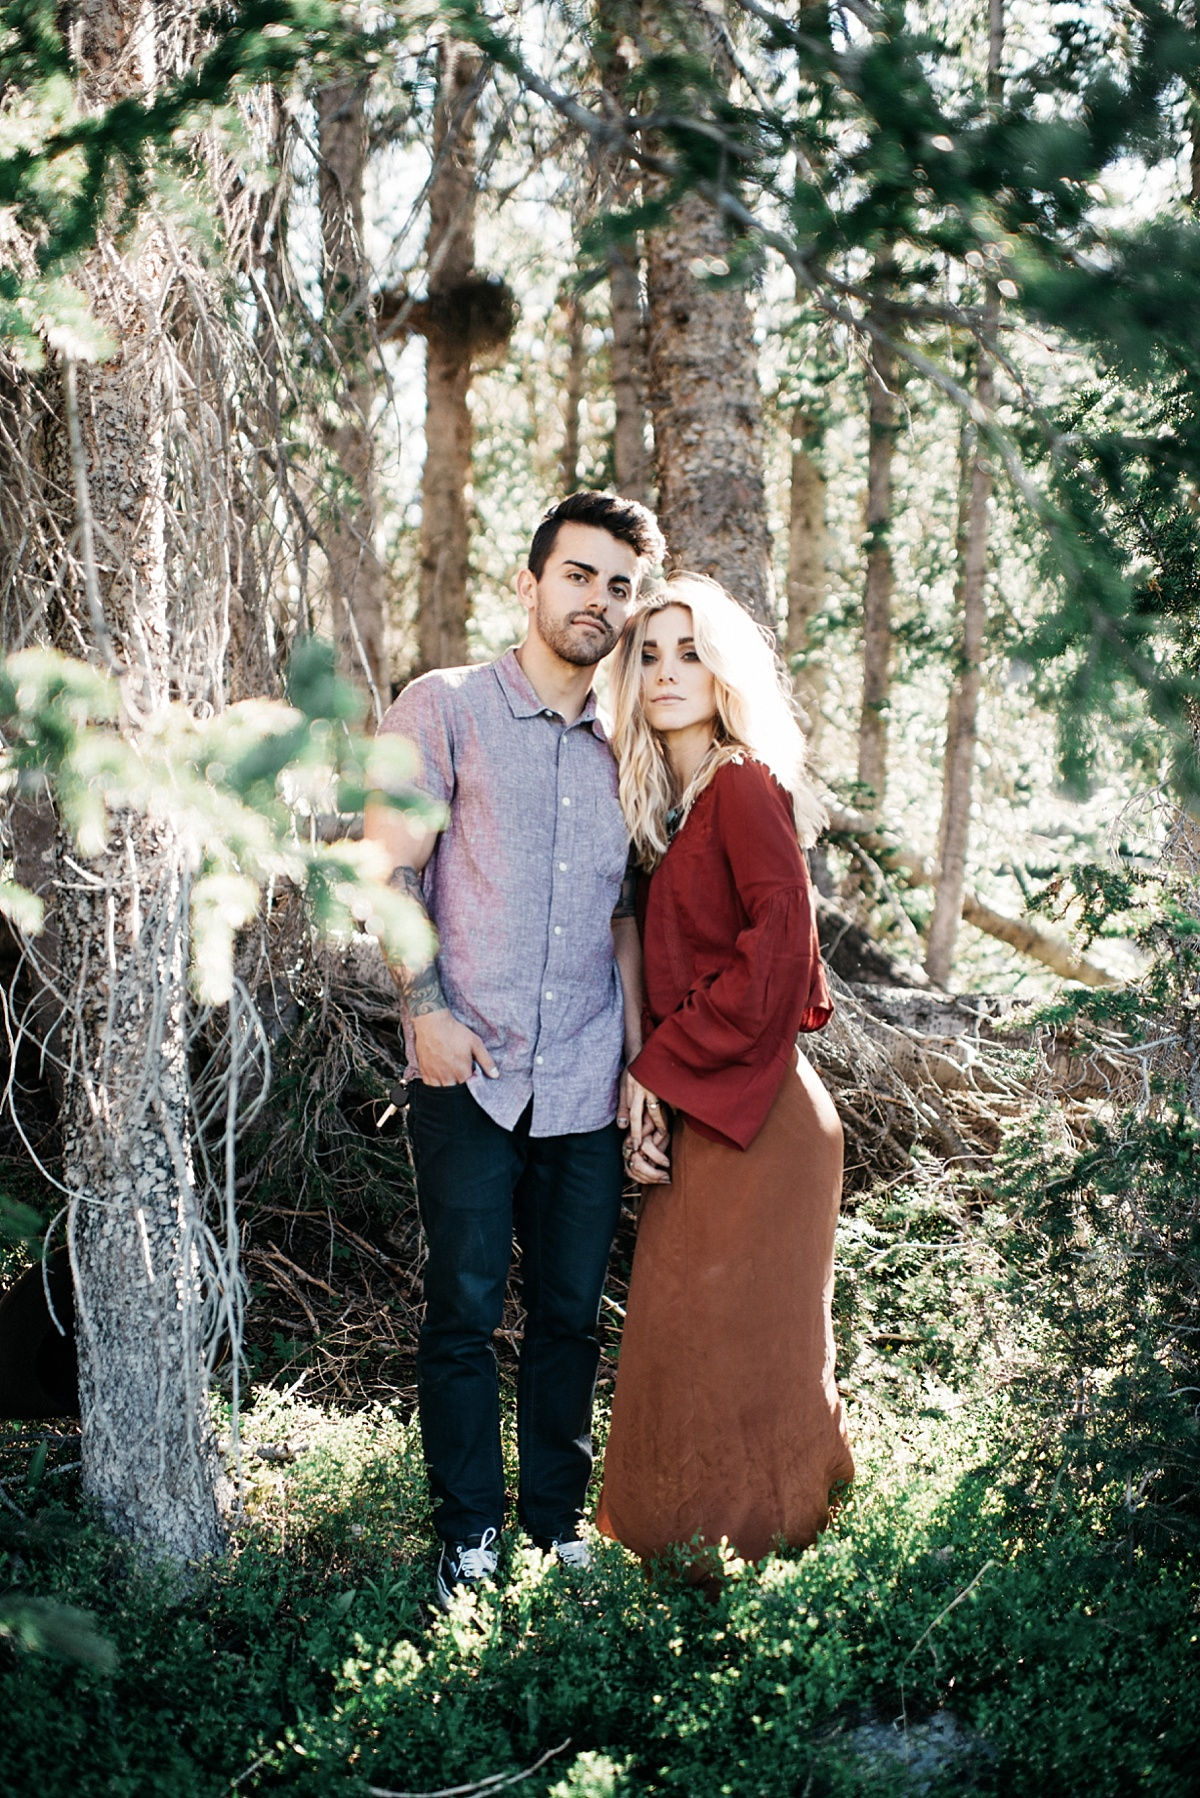 Blush-photography-nicolette-colby-engagements-77